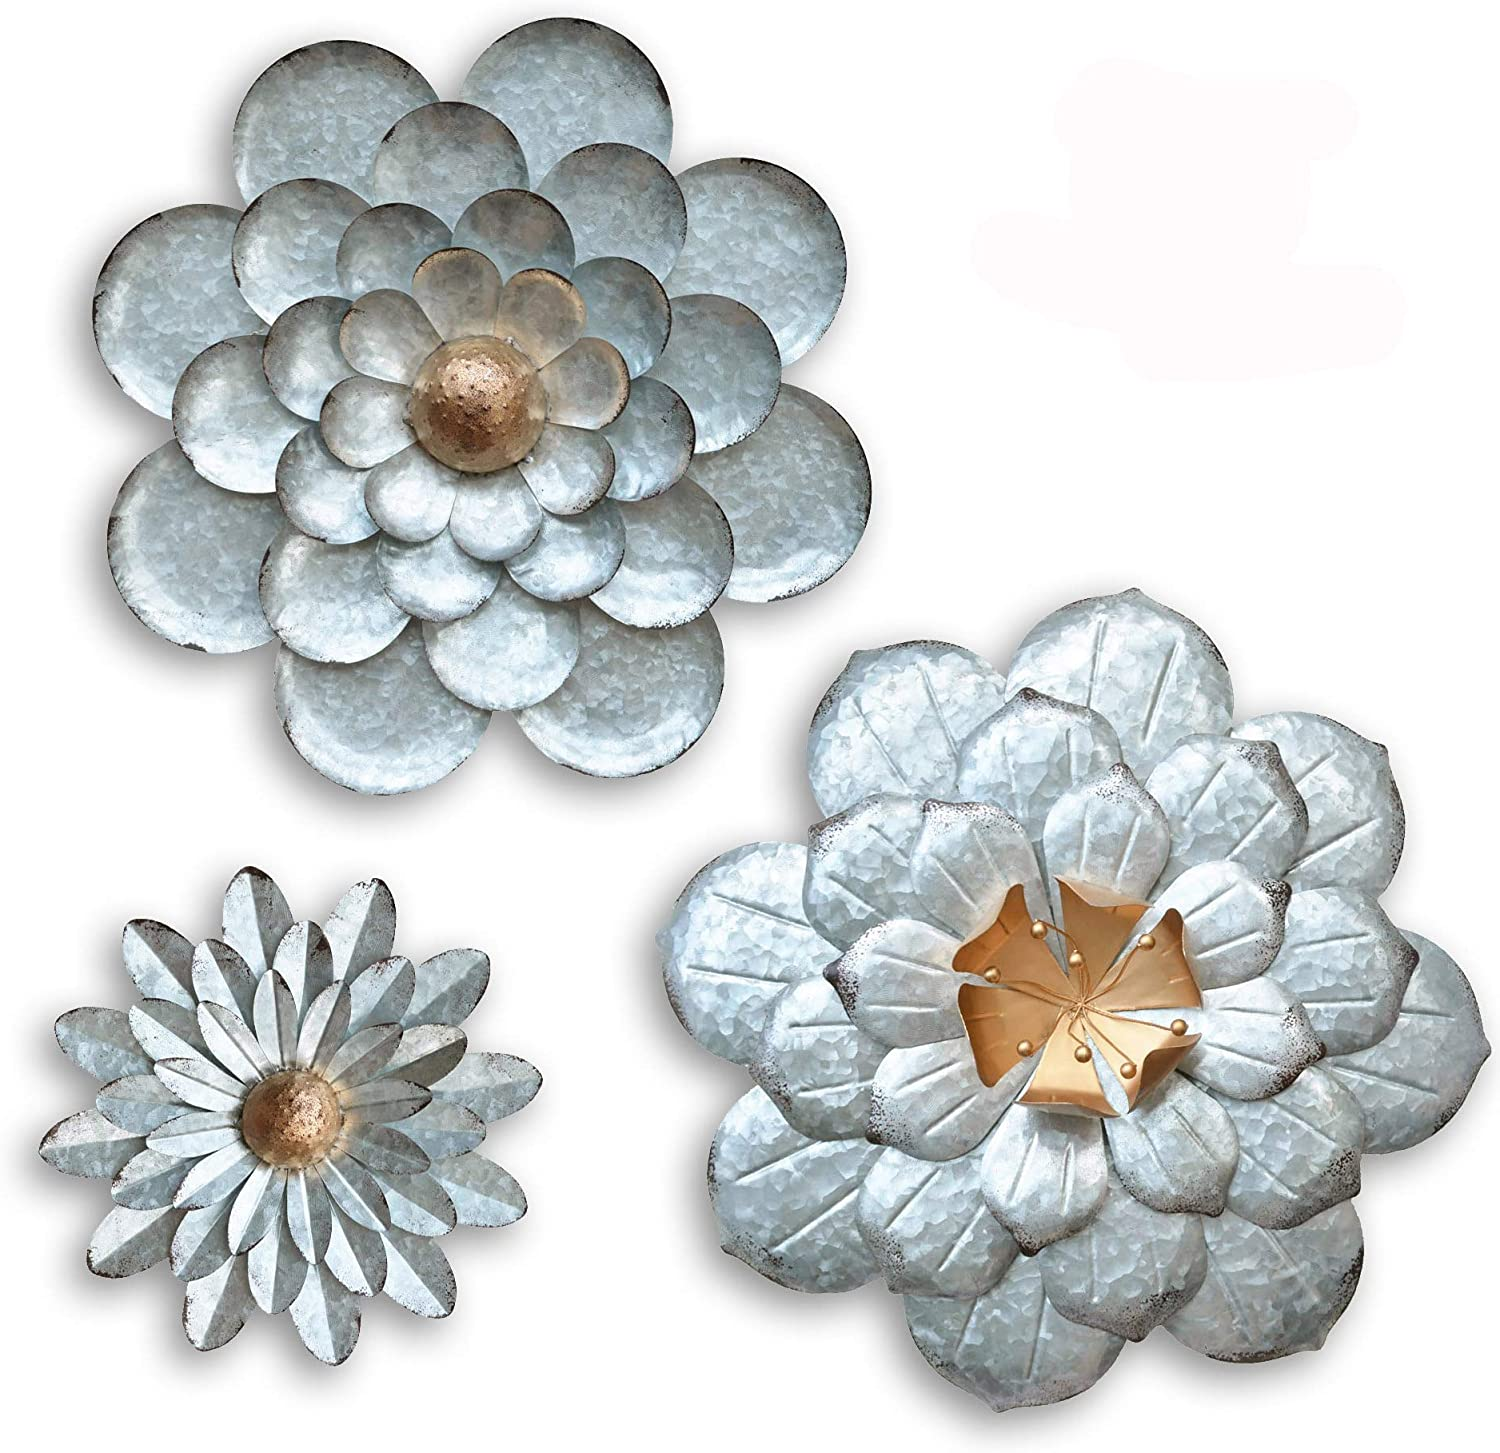 Amazon Com Giftme 5 Galvanized Flowers Wall Decor Set Of 3 Metal Flower Wall Art Everything Else